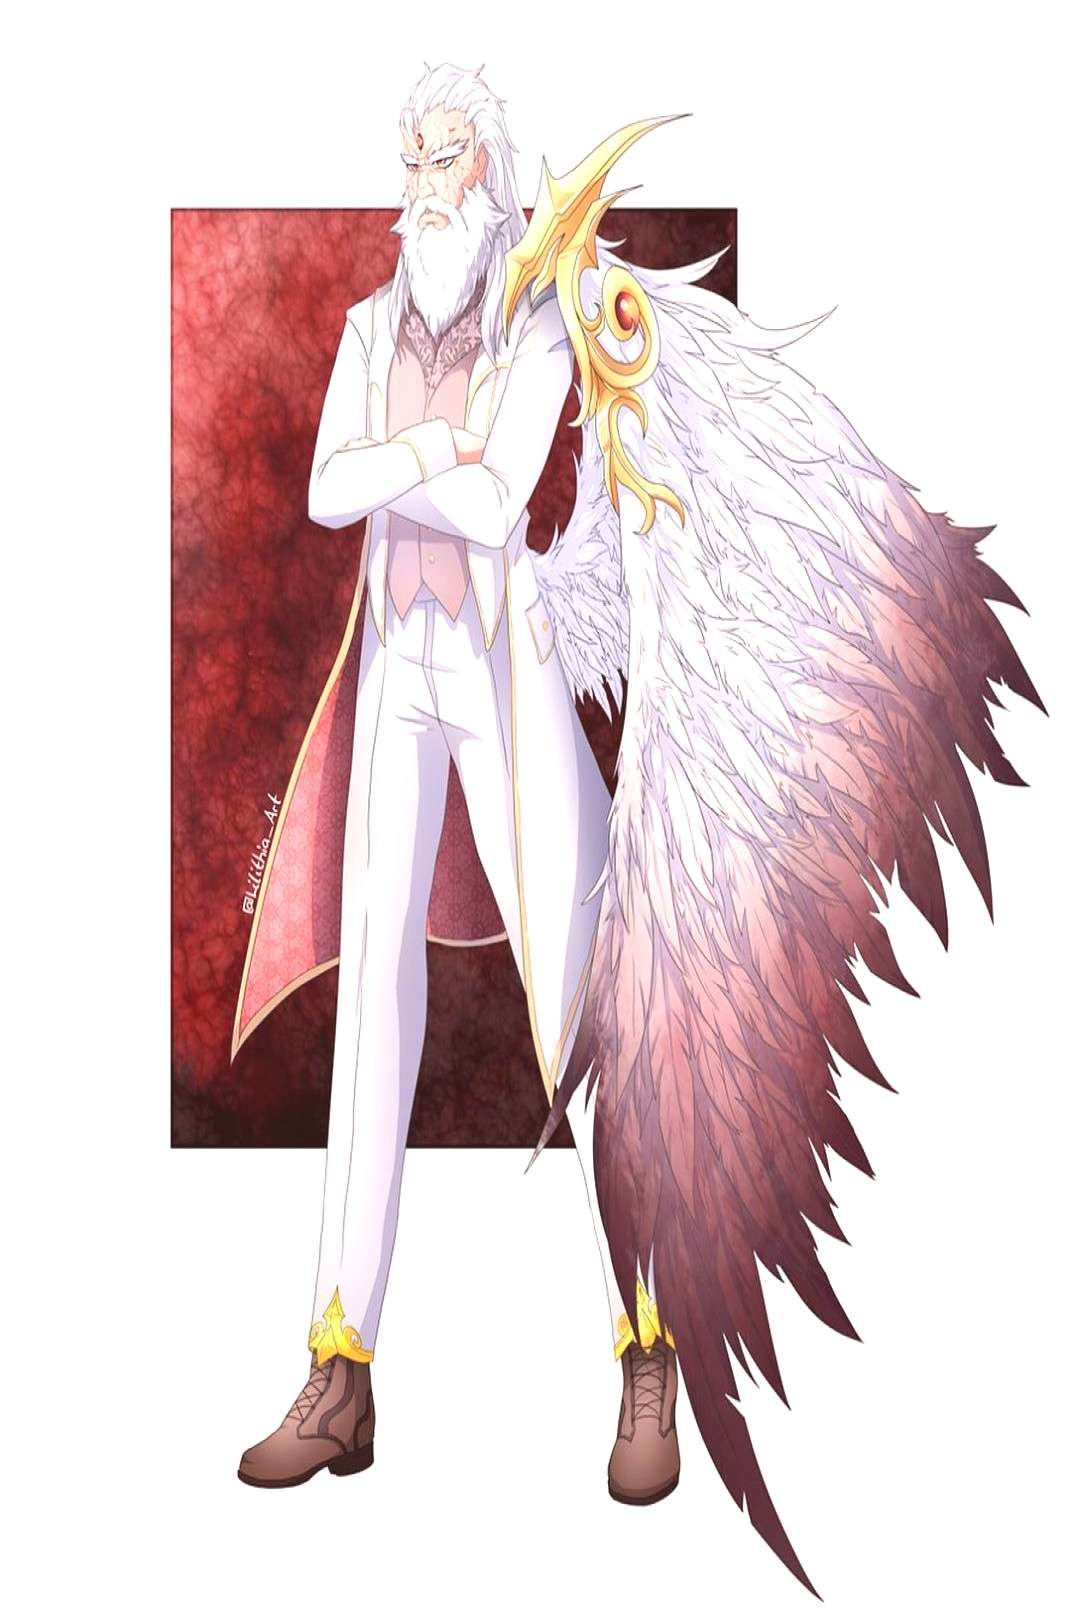 Mundus the God of Hell . Let me introduce you Mundus, Lord of De